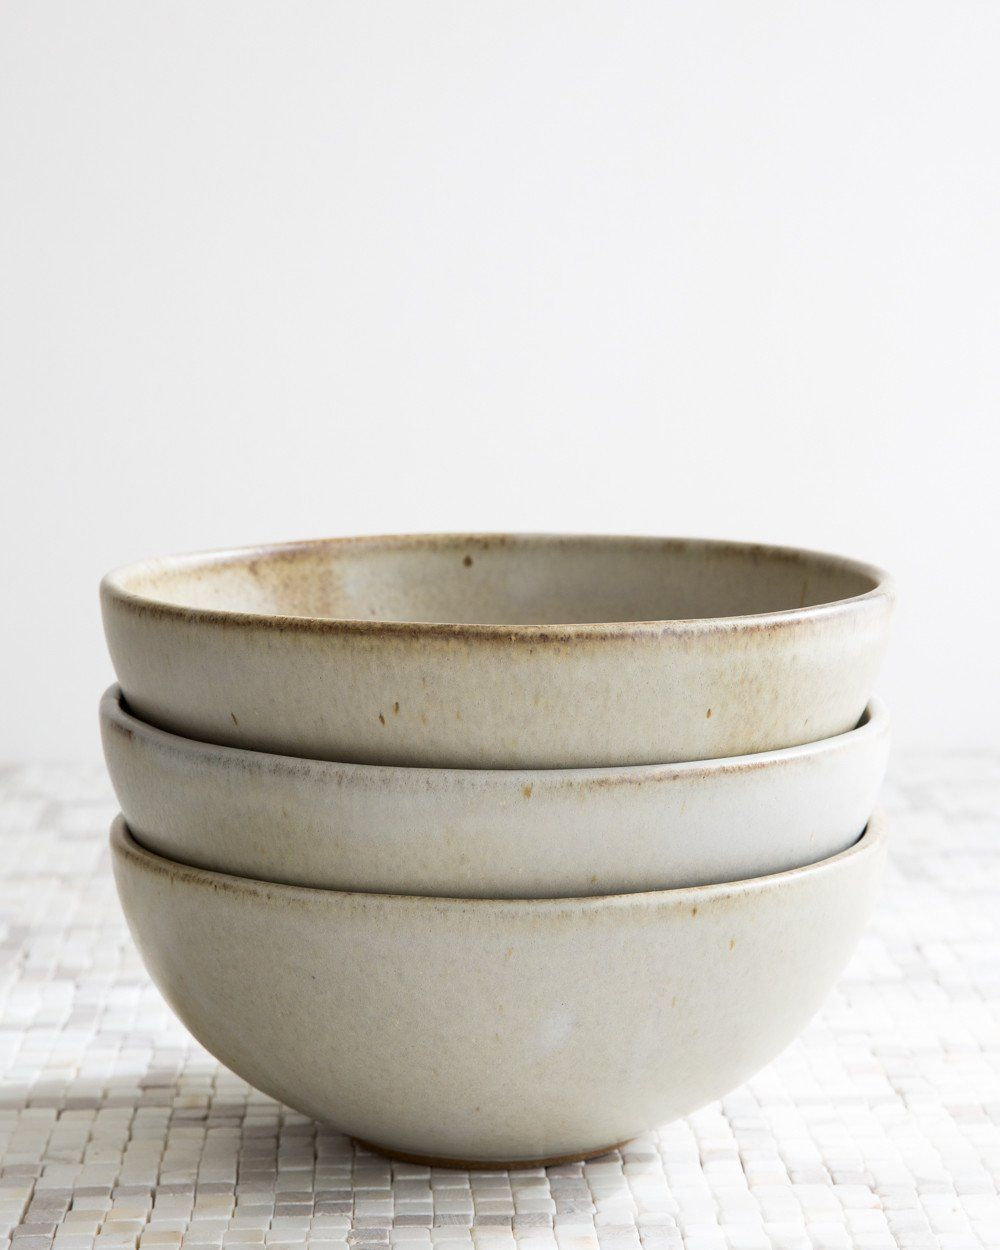 Ramen Bowl Ceramic Dishes Natural Ceramic Ramen Bowl